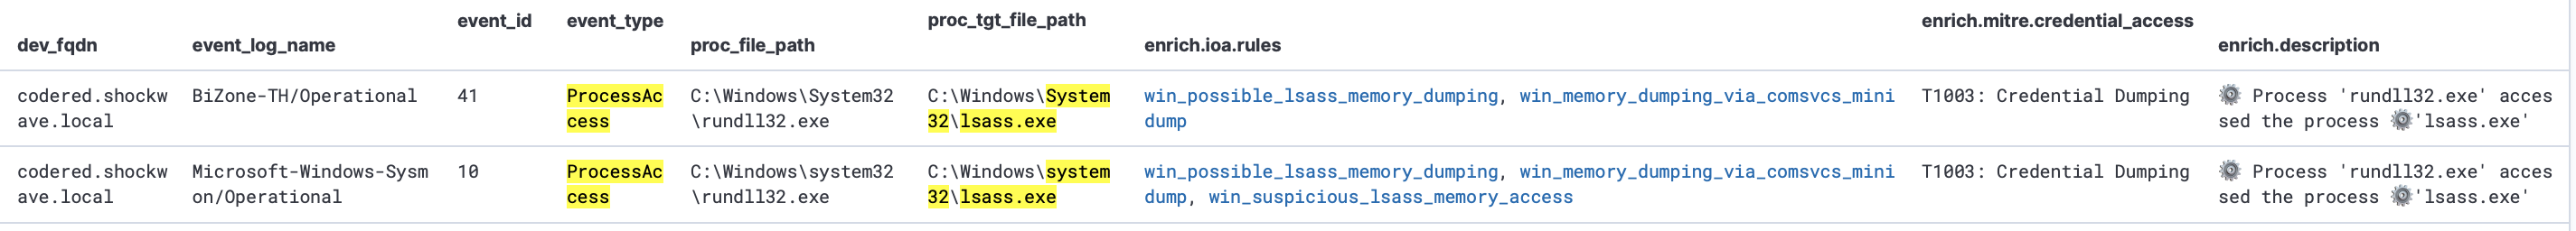 Fig. 24: Detection (using EDR/Sysmon events) of attempts to create LSASS process memory dumps